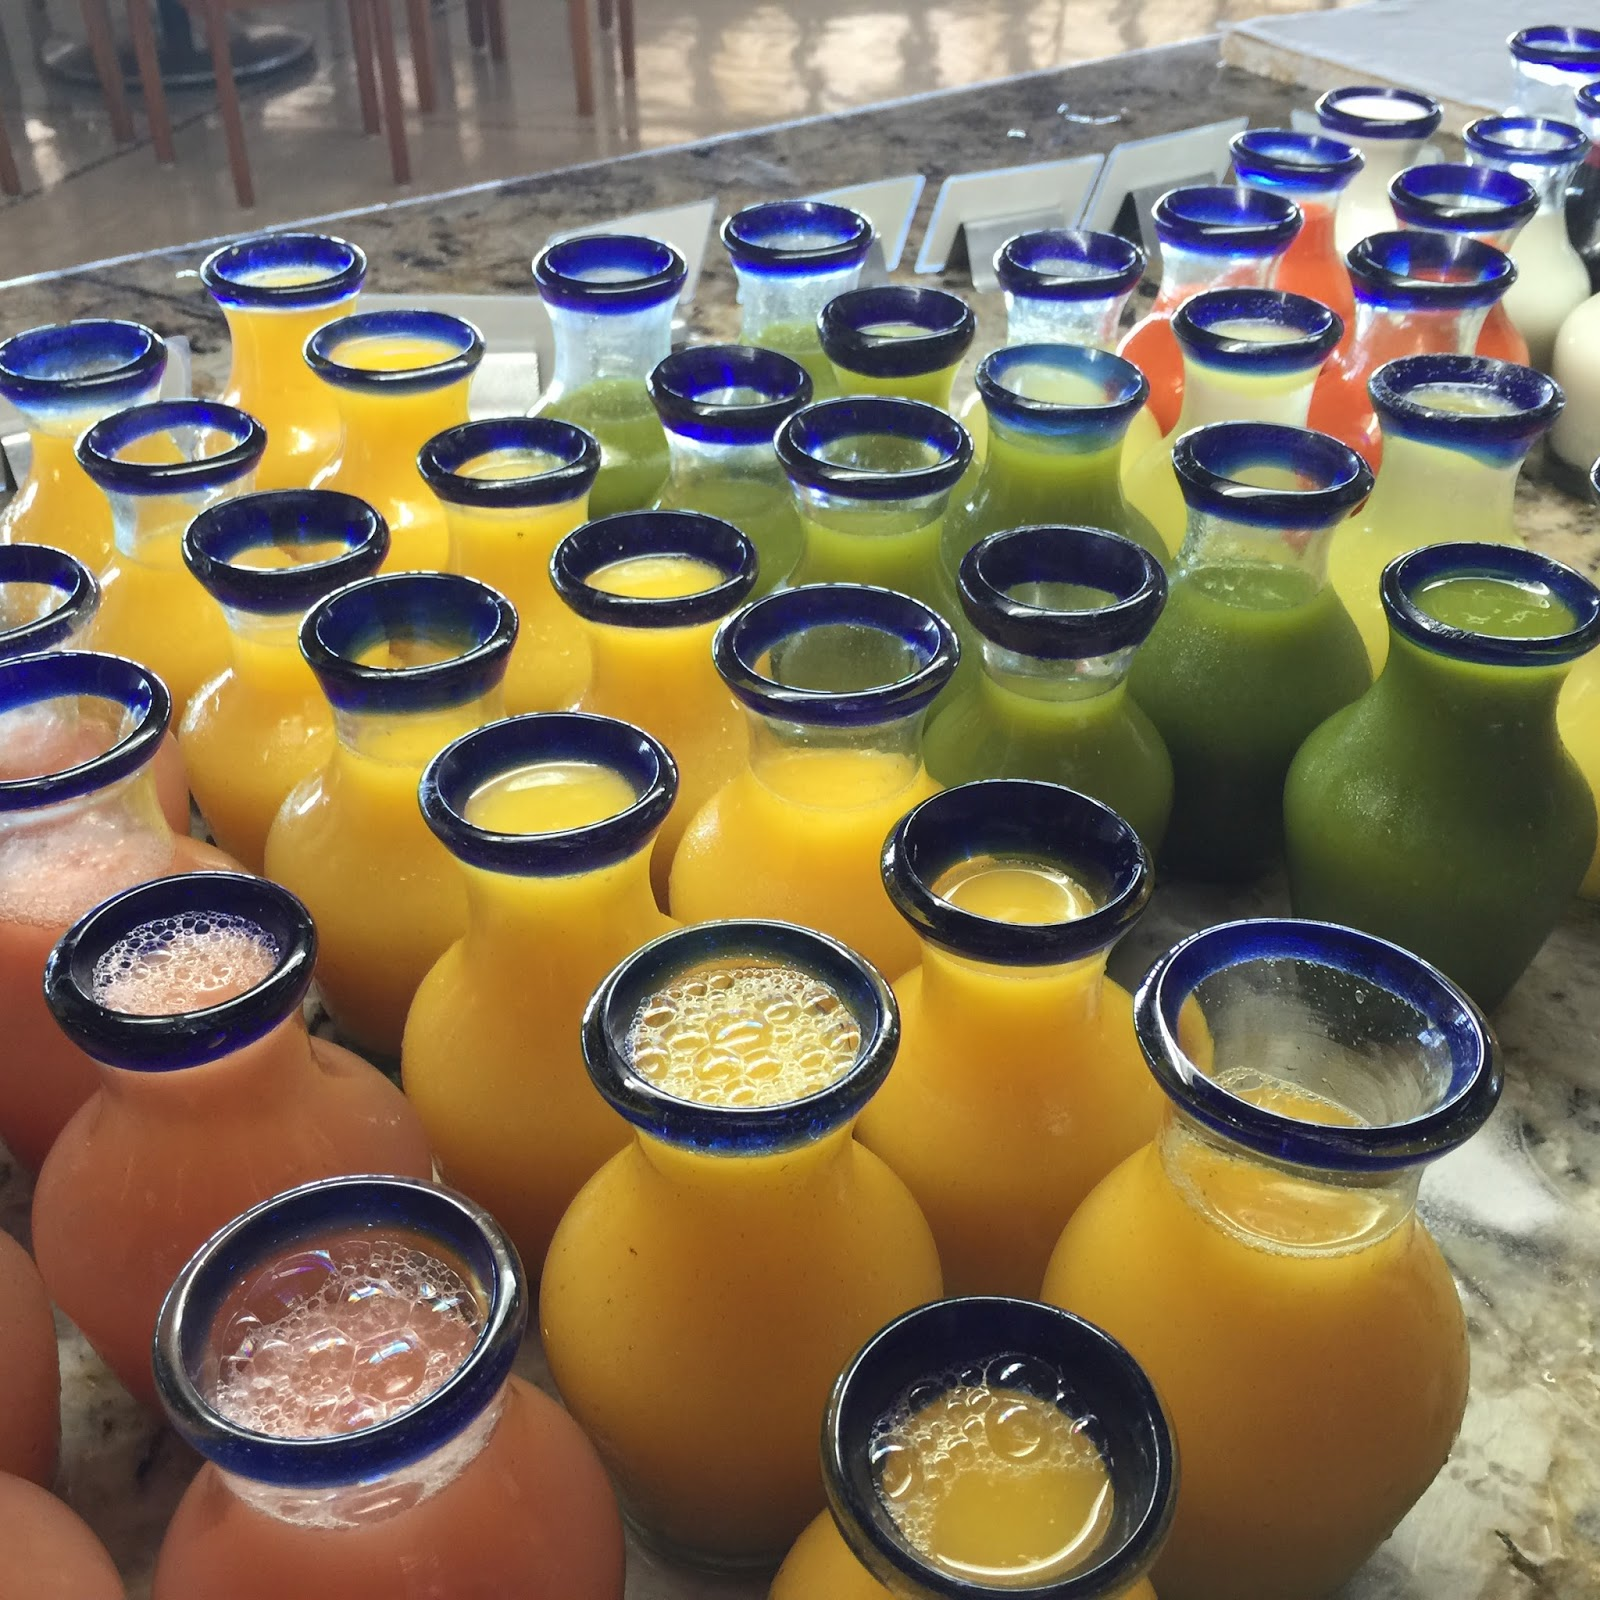 The Gorgeous Juices In Mexico! I Reached For The